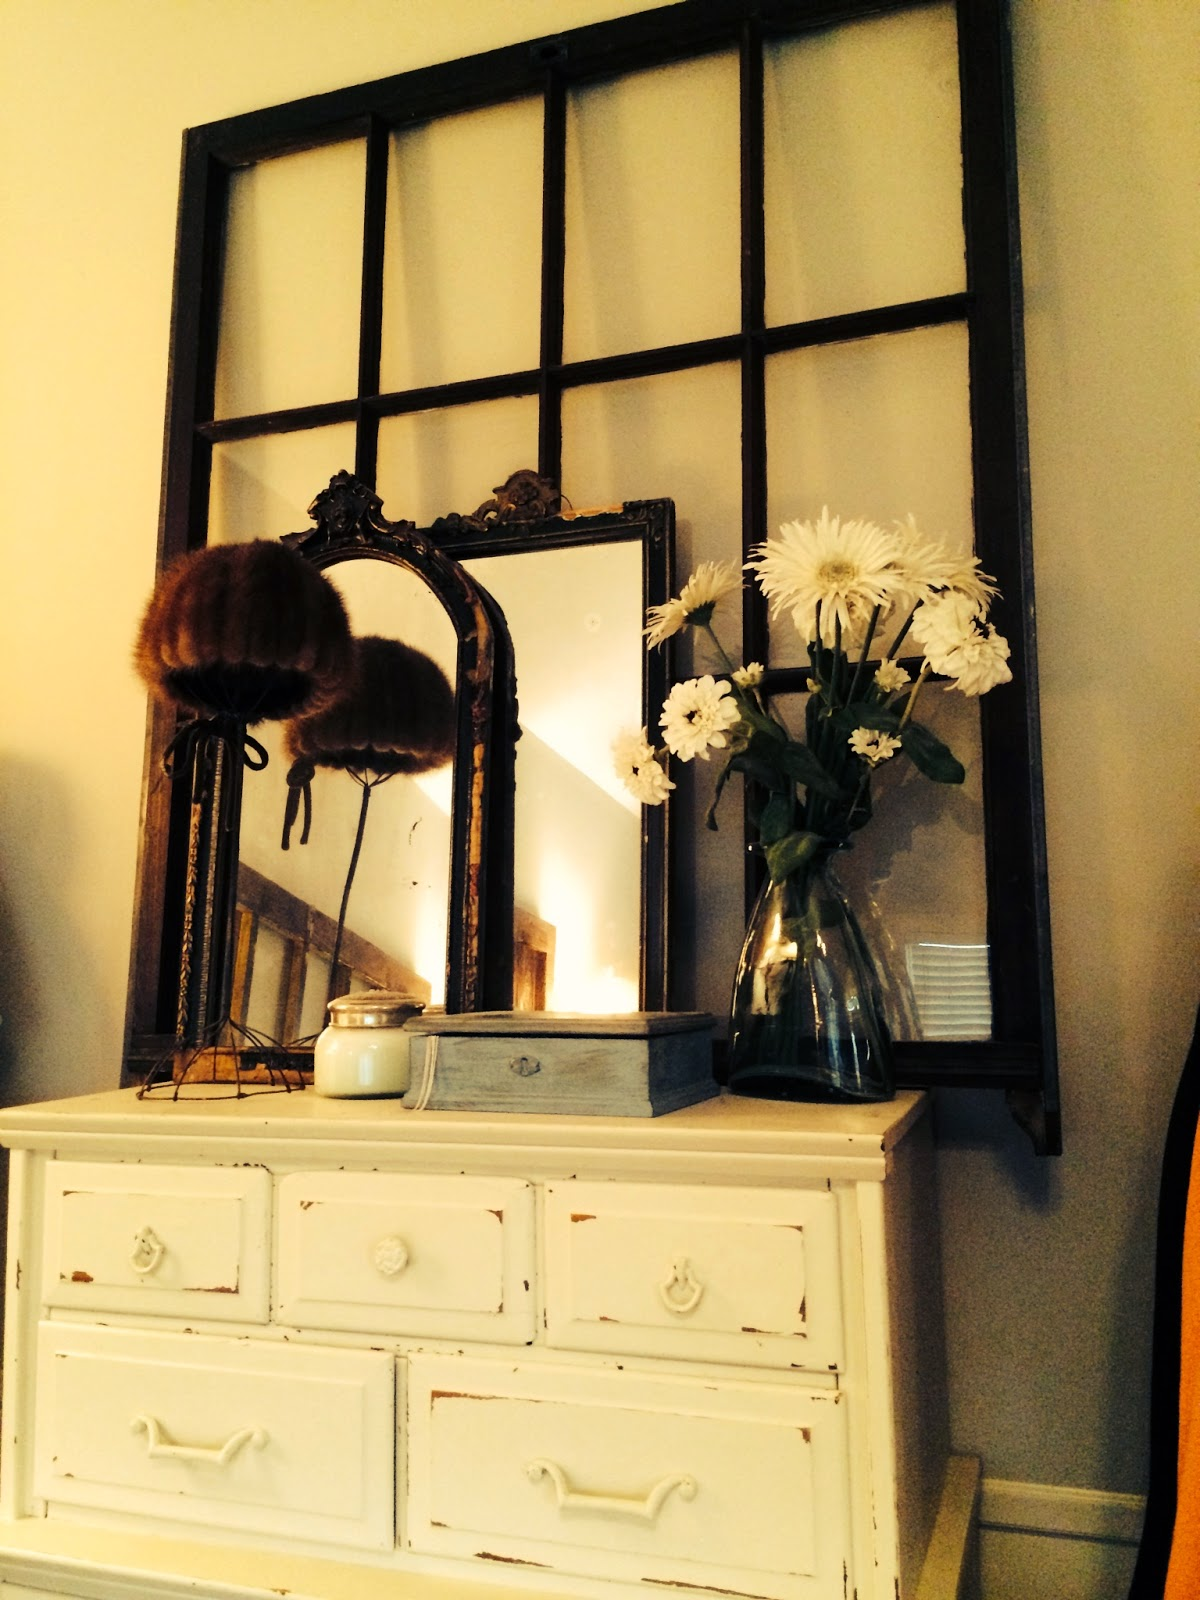 Second Hand Rose: Vintage window and door decorating ideas from ...